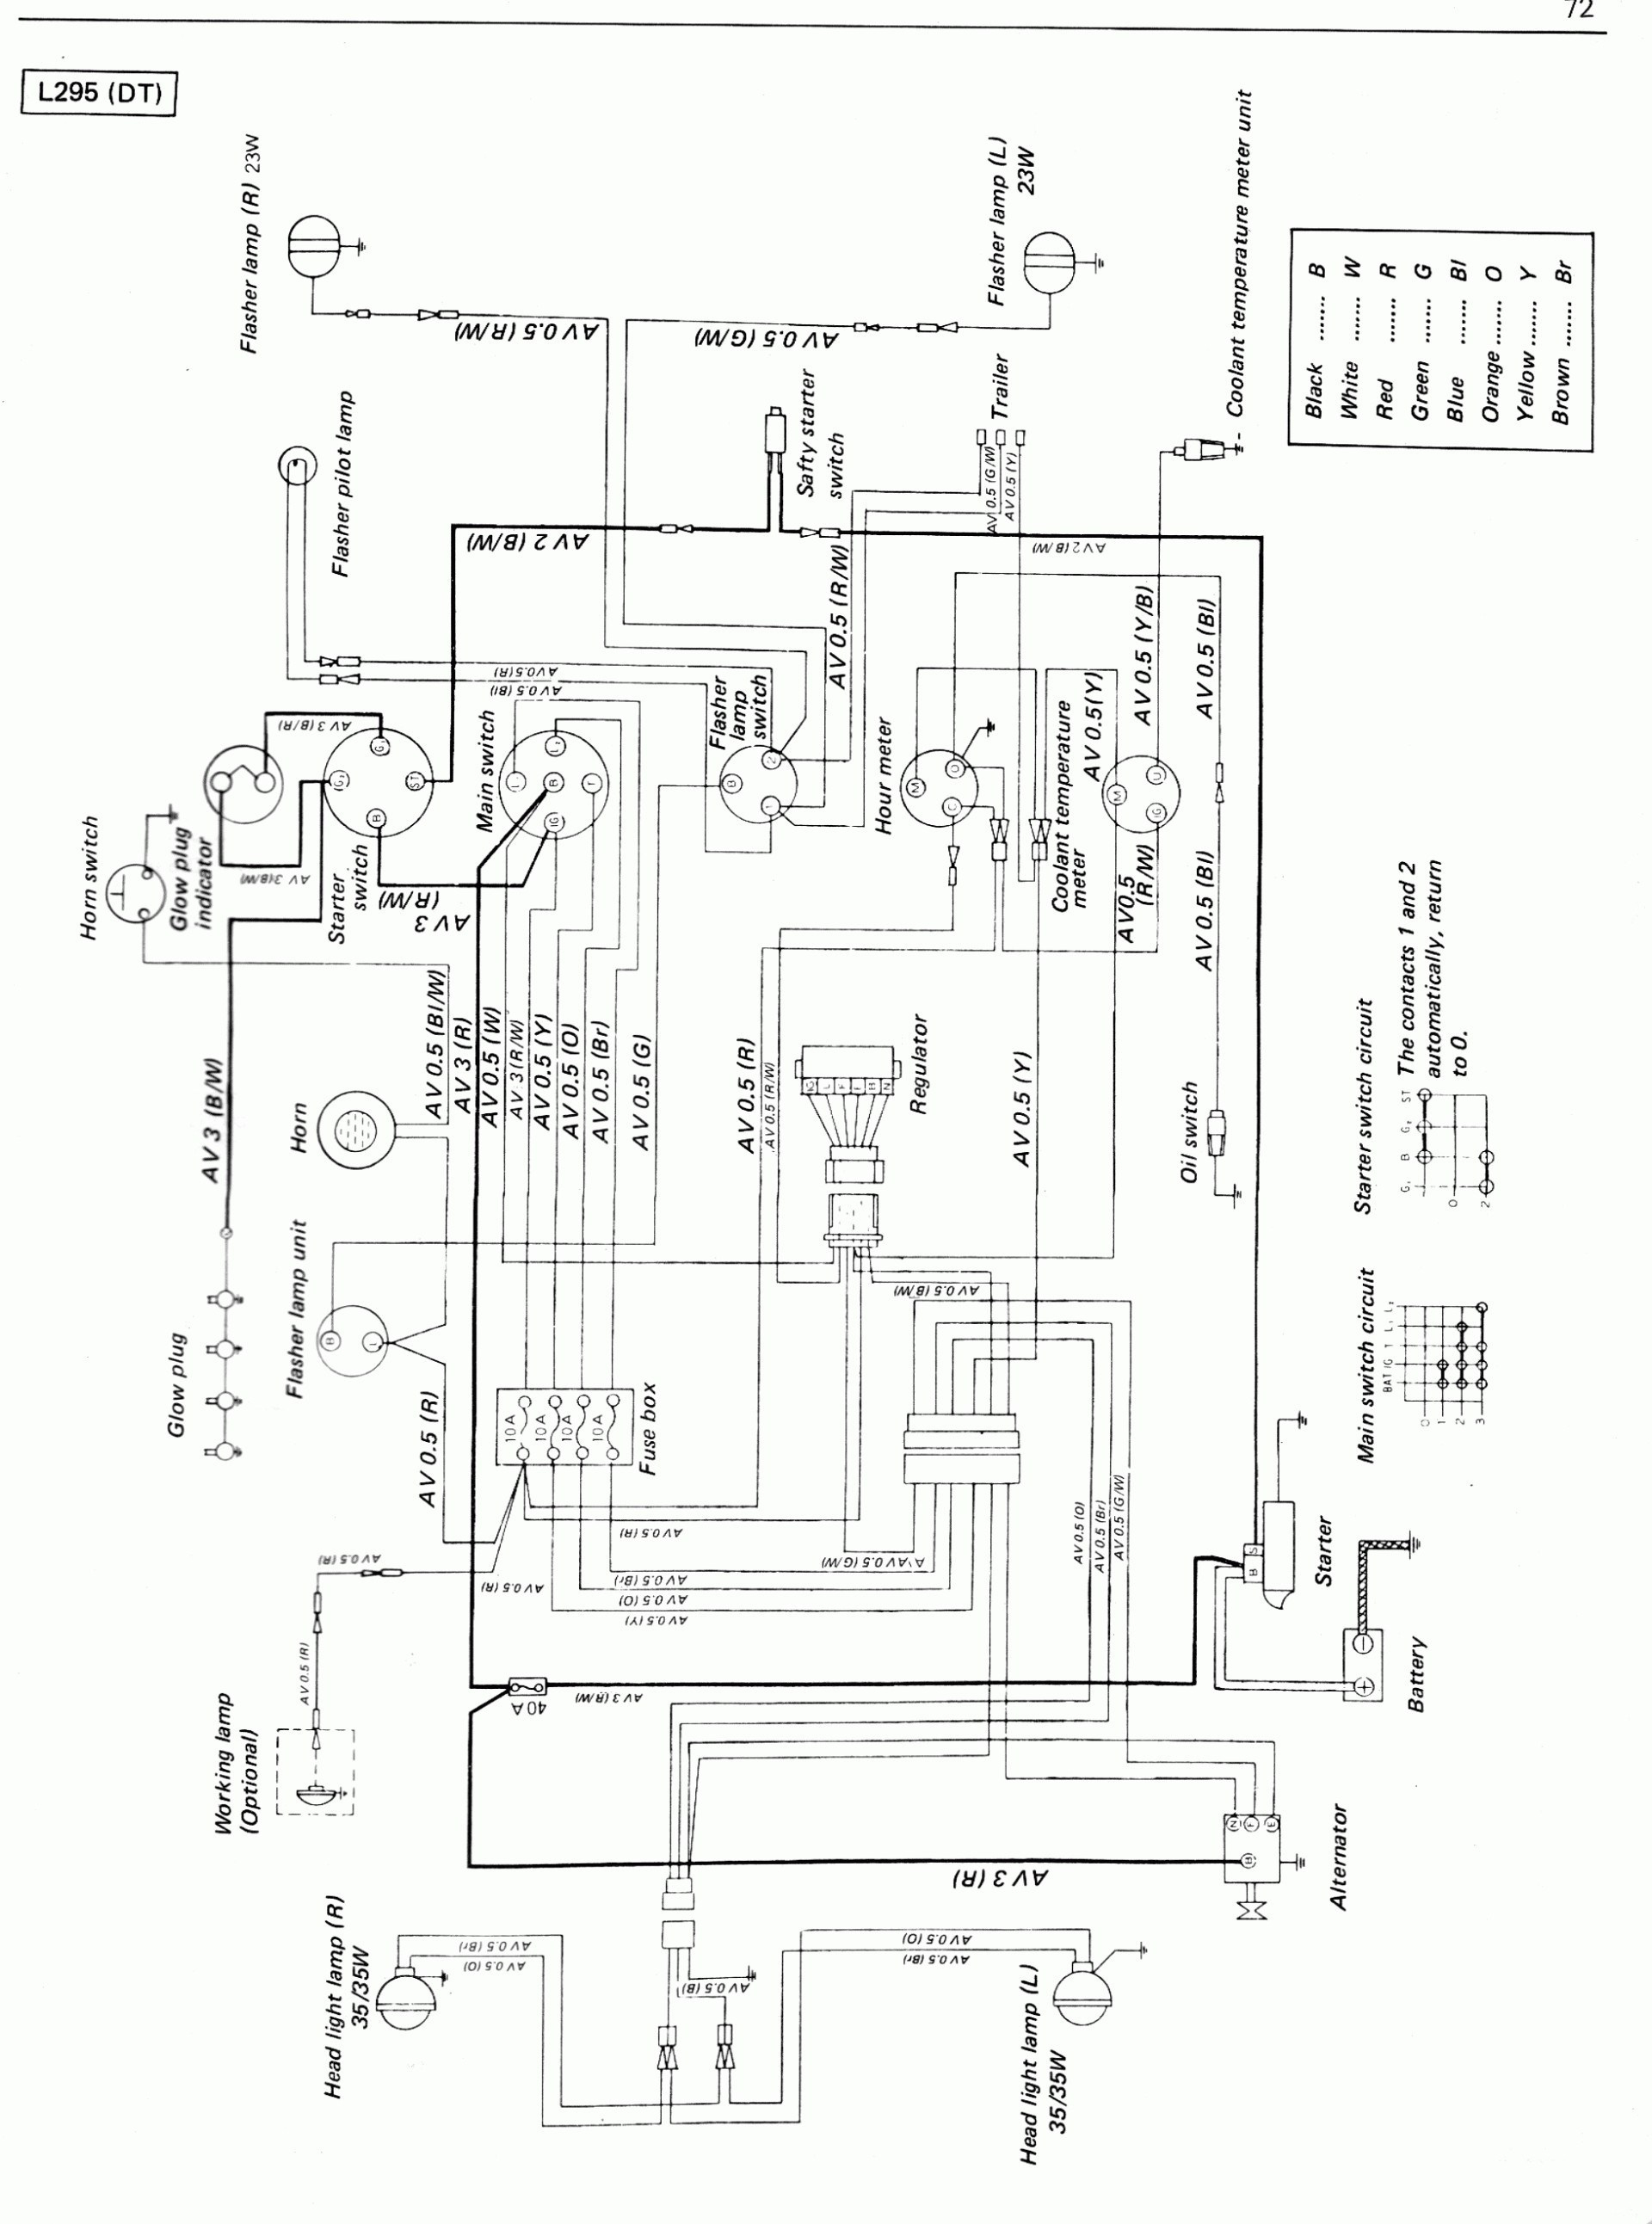 Kubota Work Light Wiring Diagram